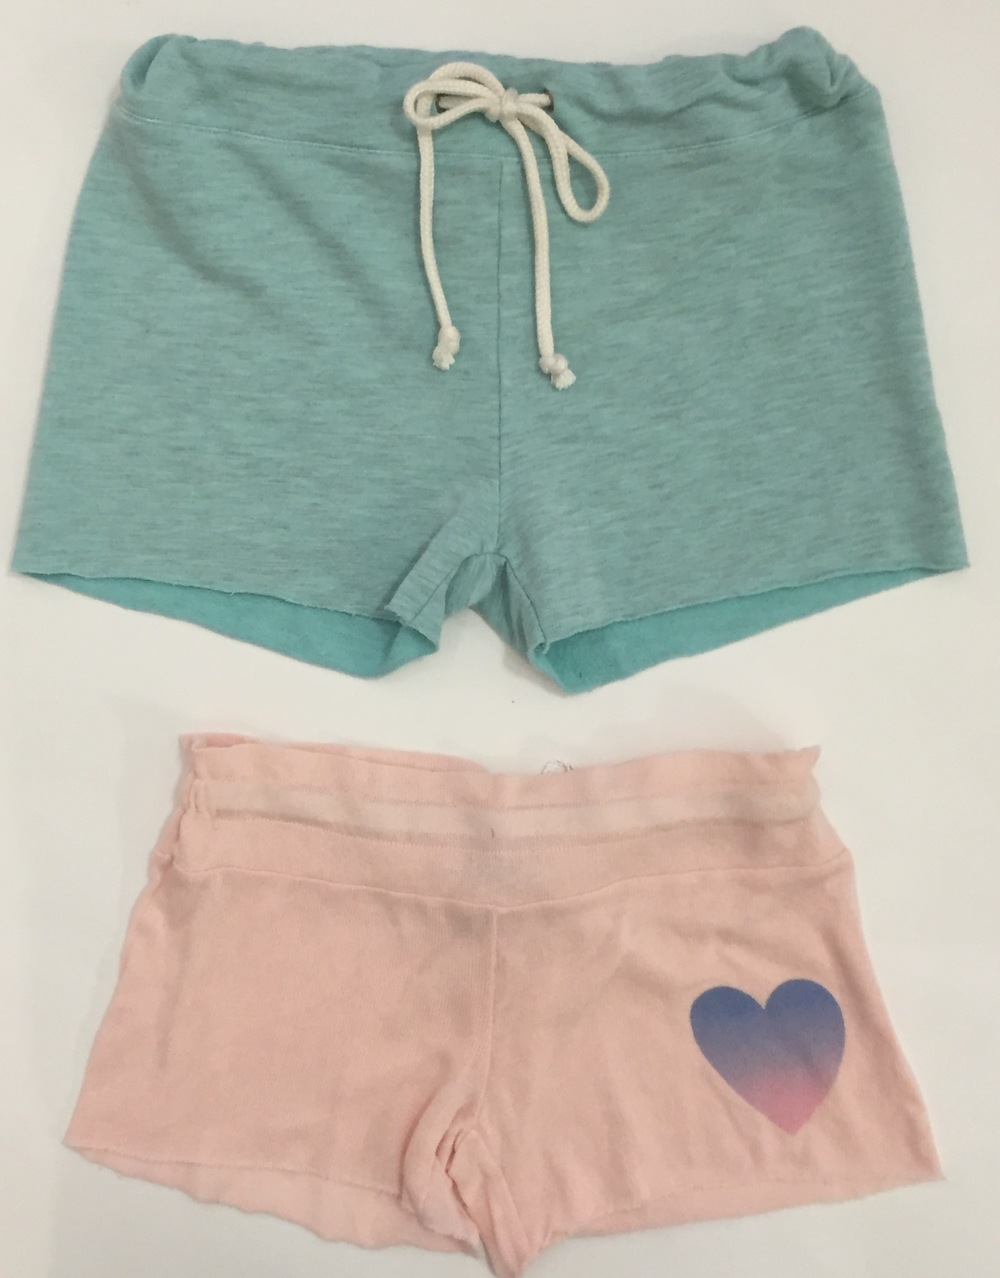 Soft sweatshirt shorts are perfect for a day at the beach or hanging out poolside